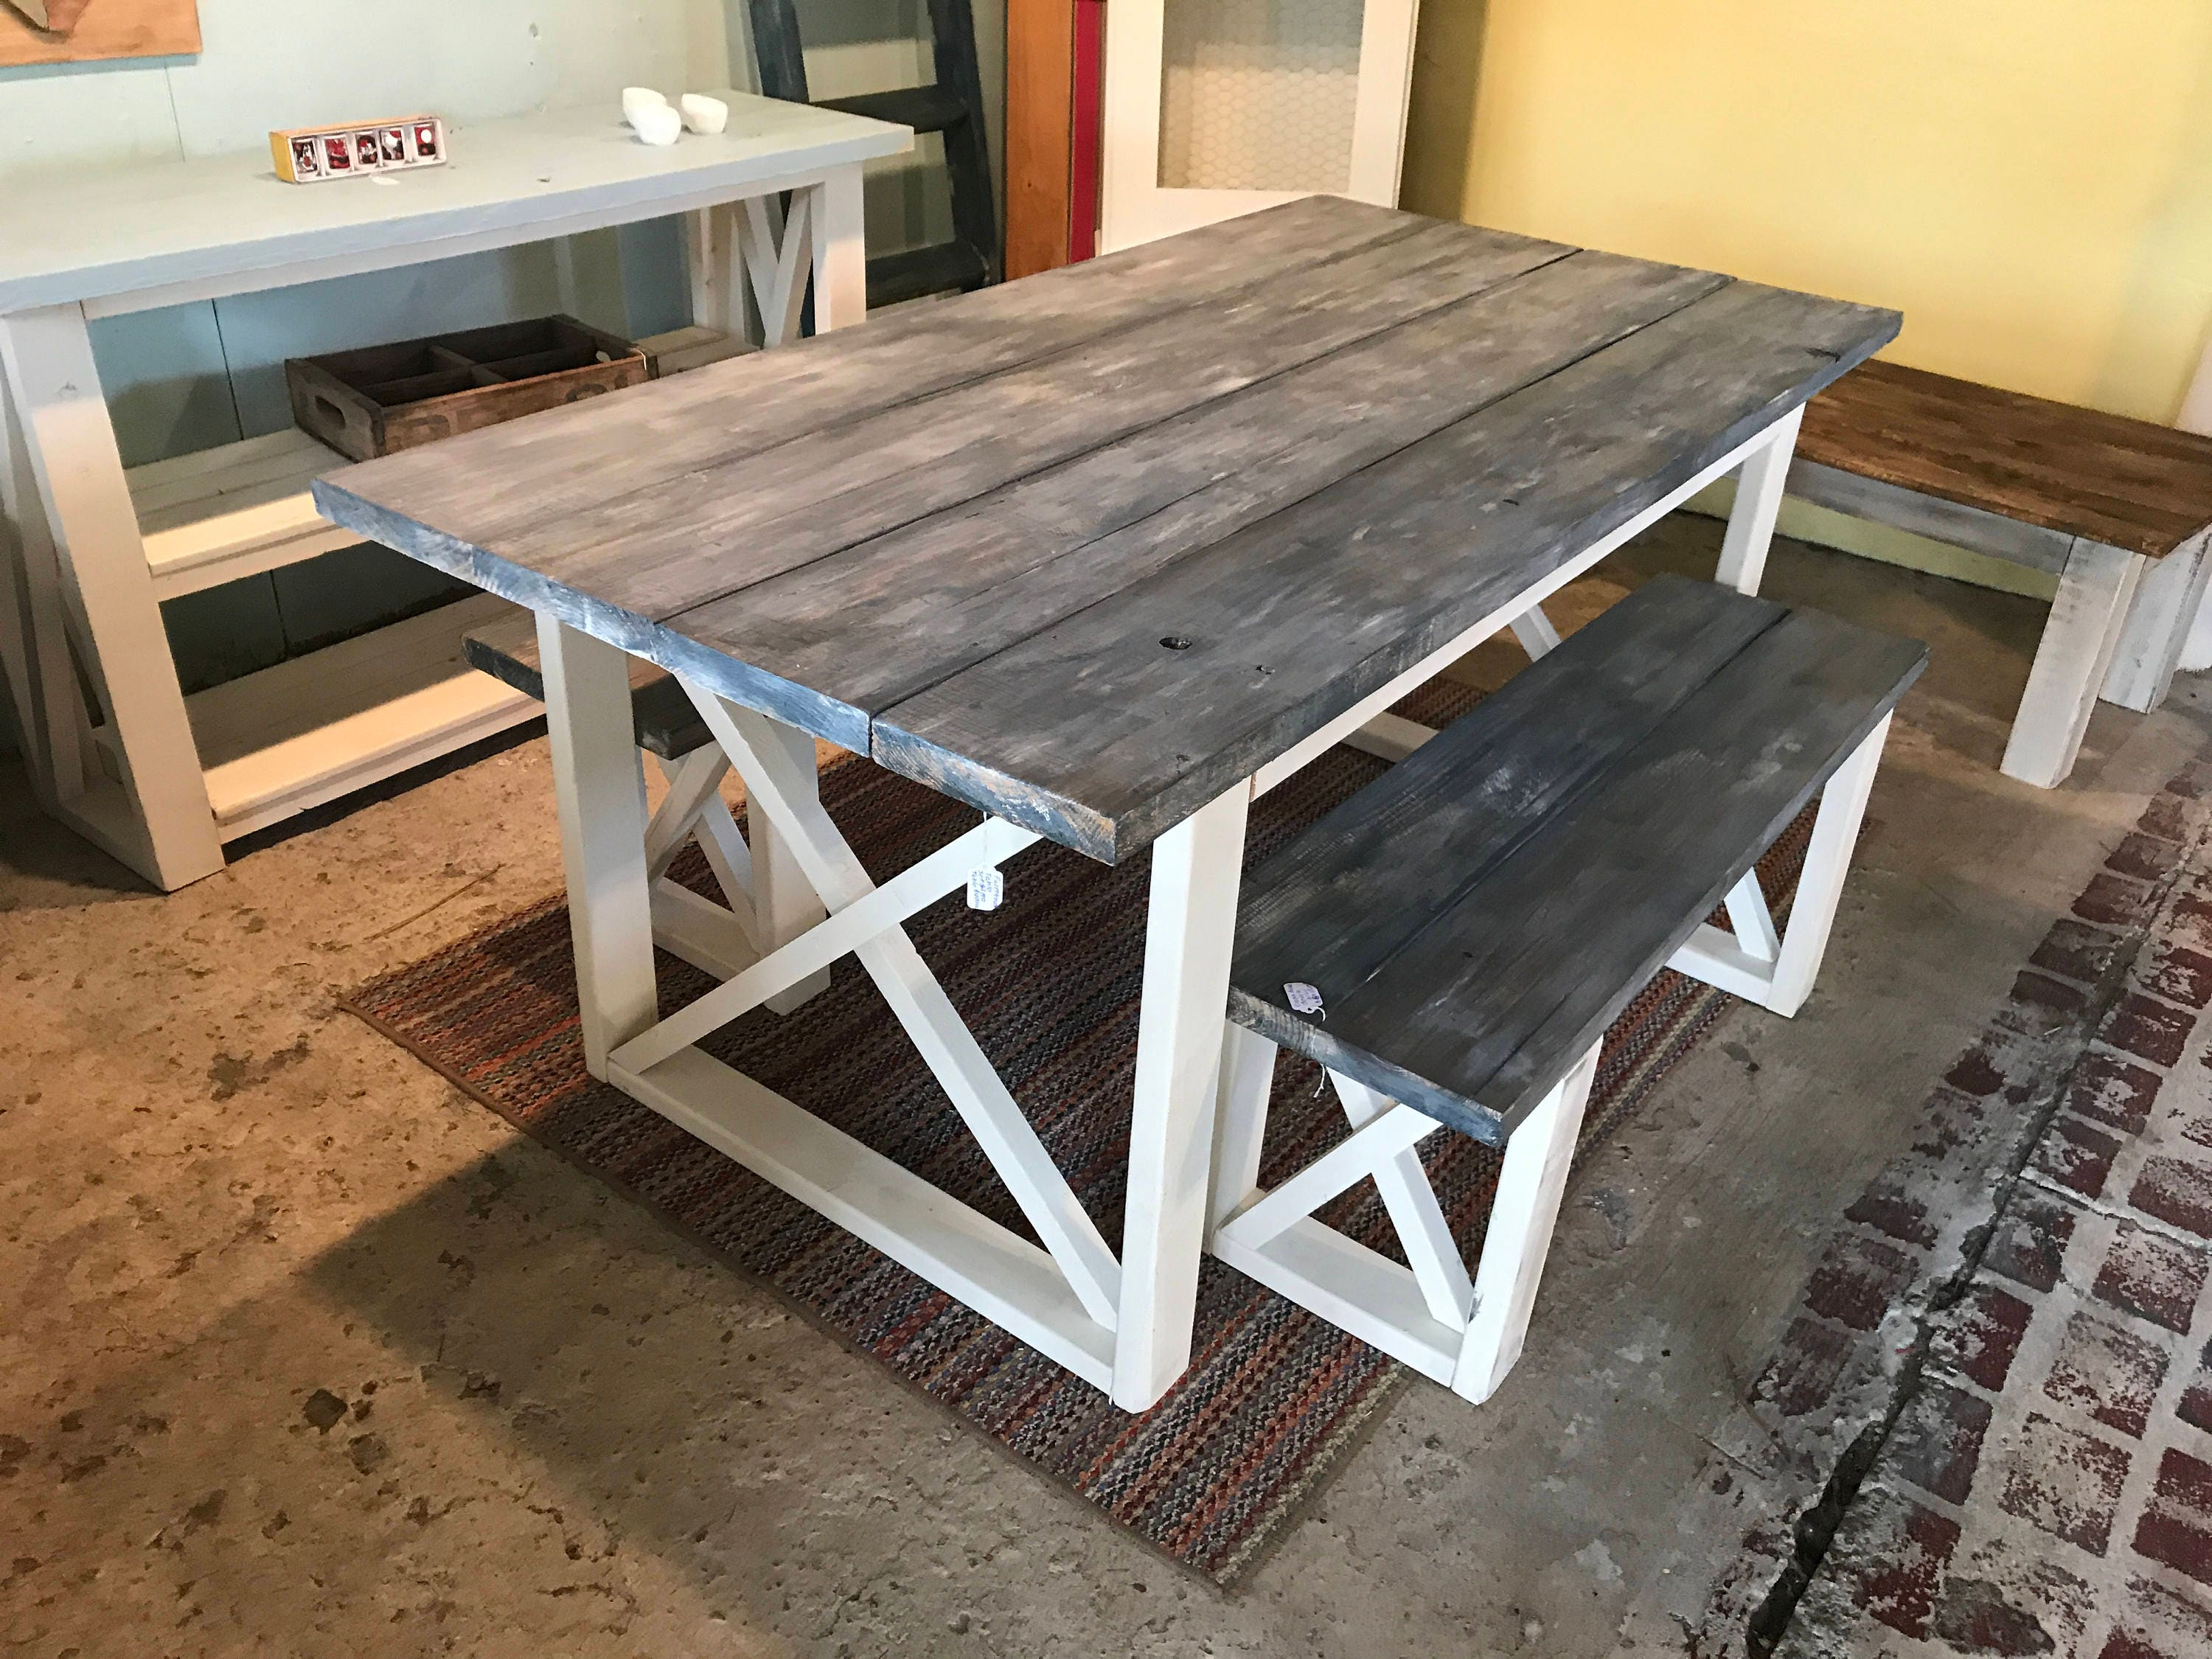 Rustic Farmhouse Table With Benches With White Wash